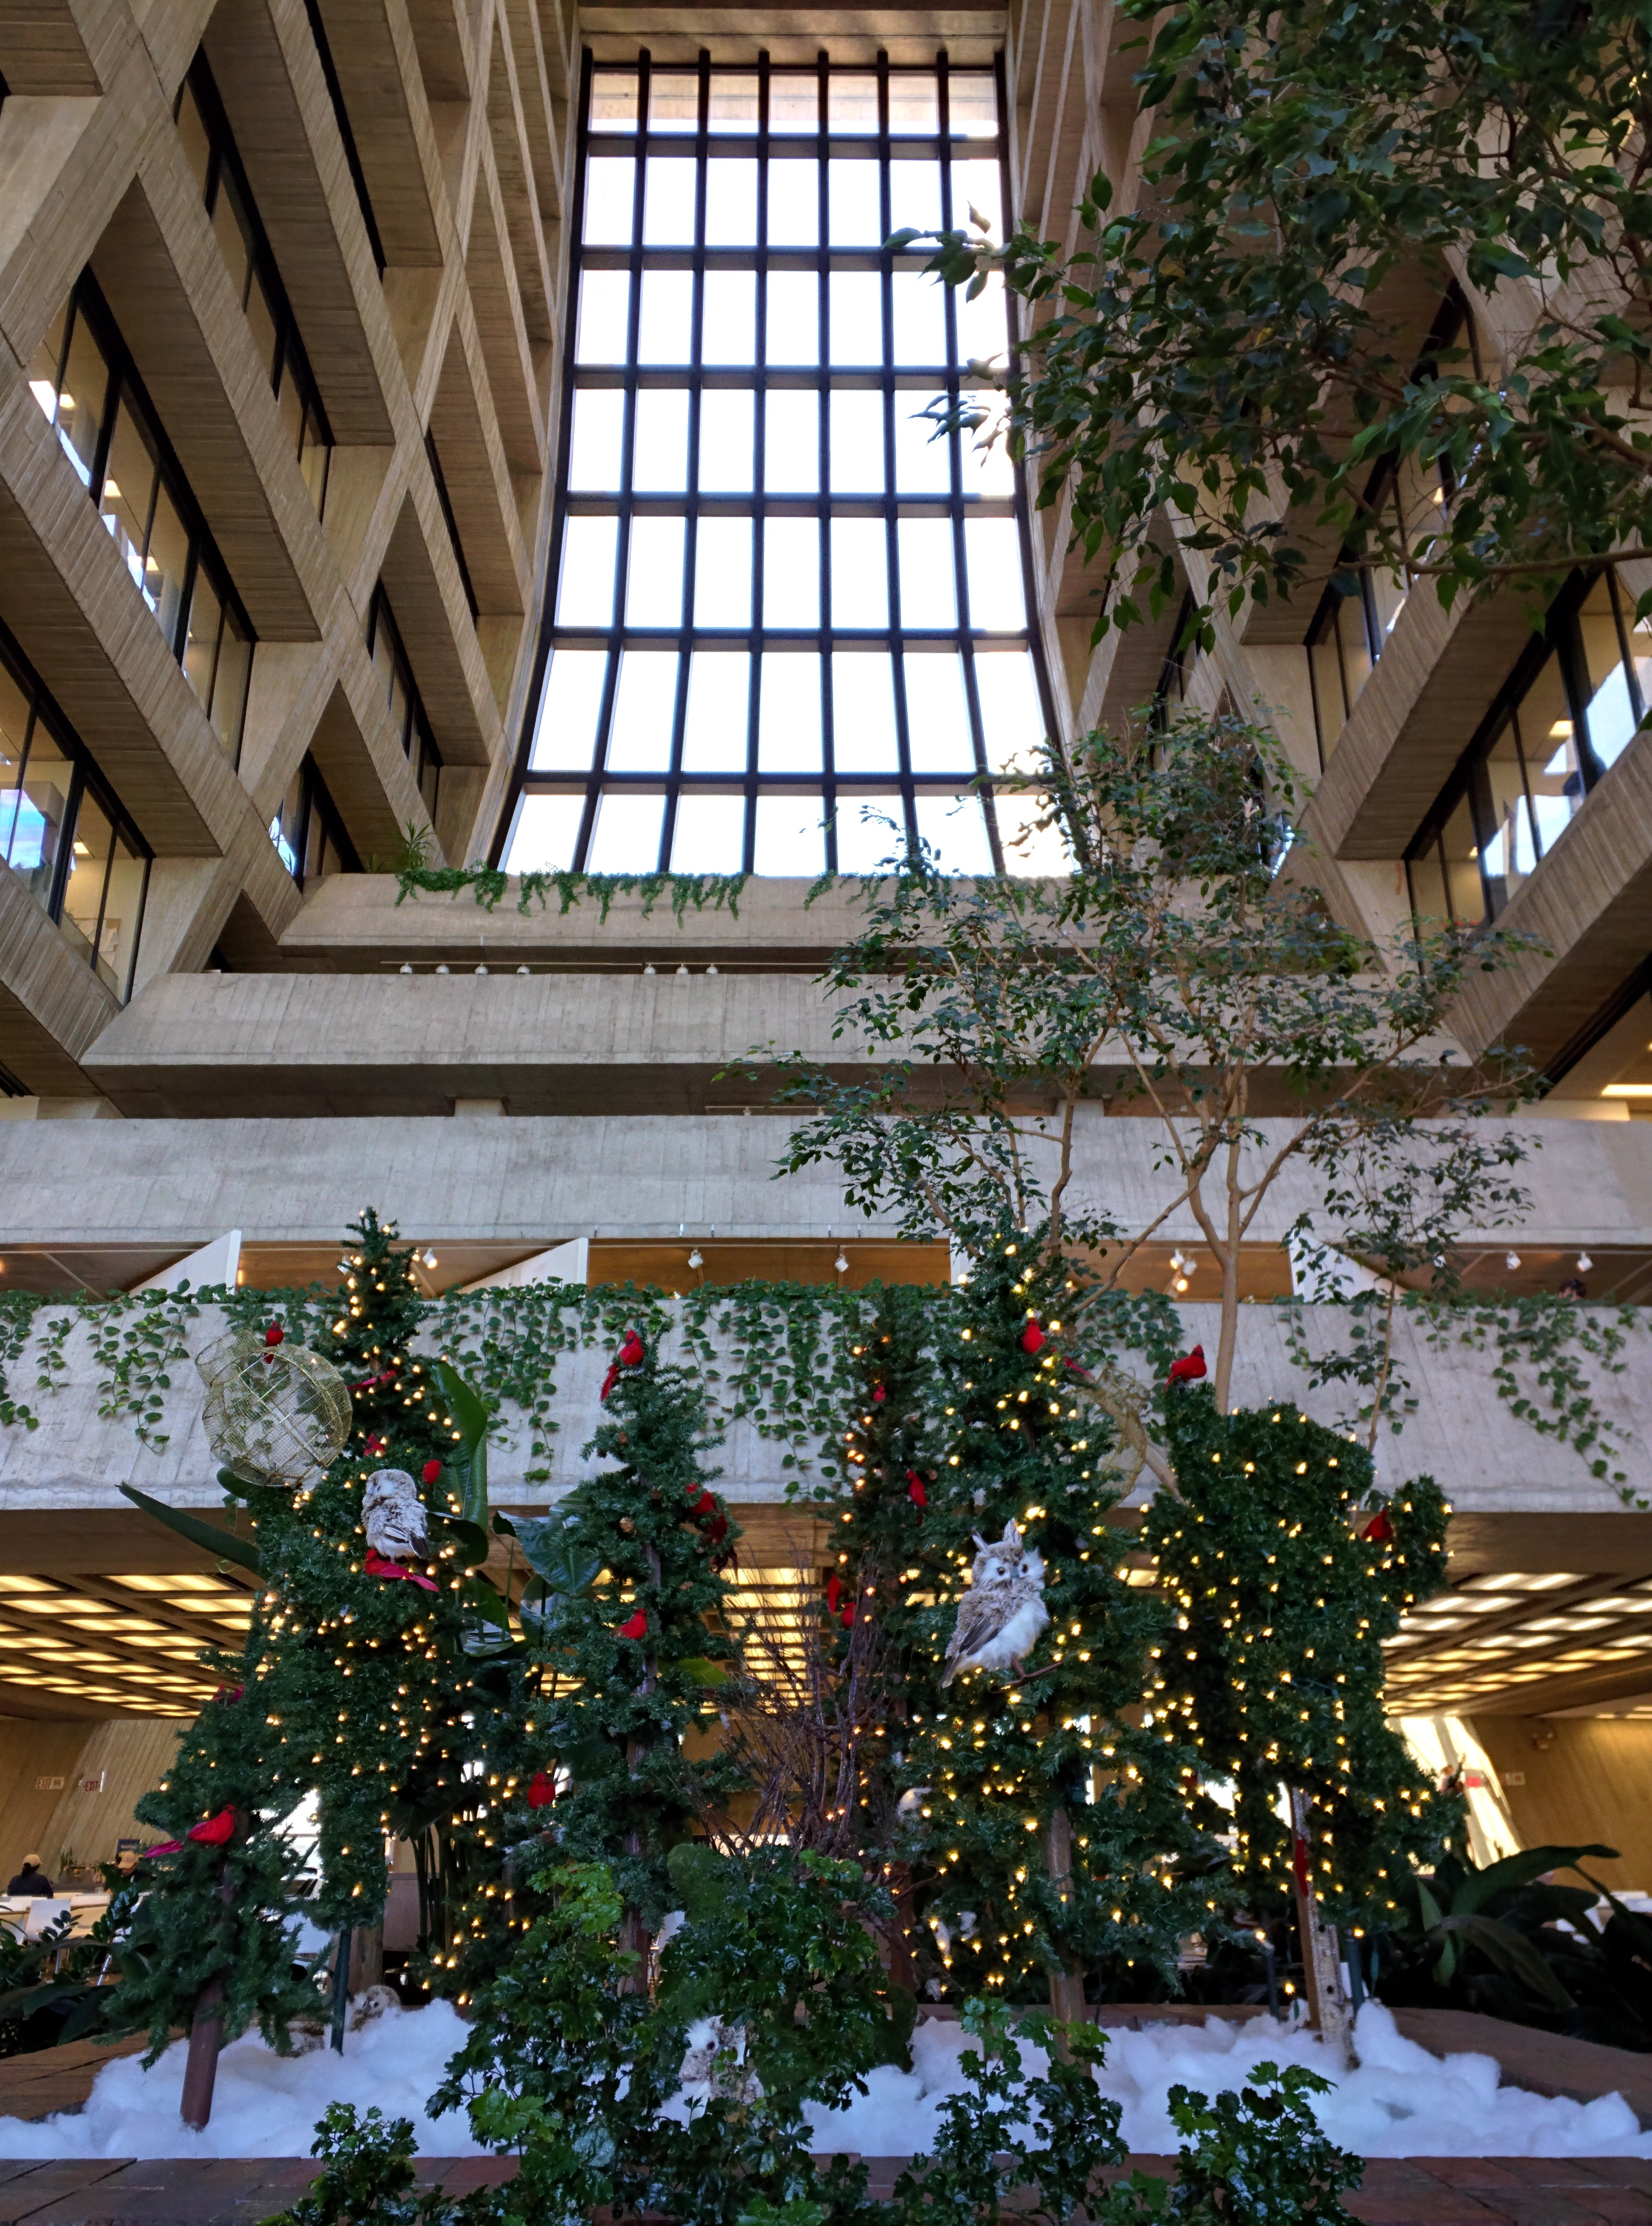 Wilson Hall is festive with seasonal lights and decorations. Photo: Valery Stanley